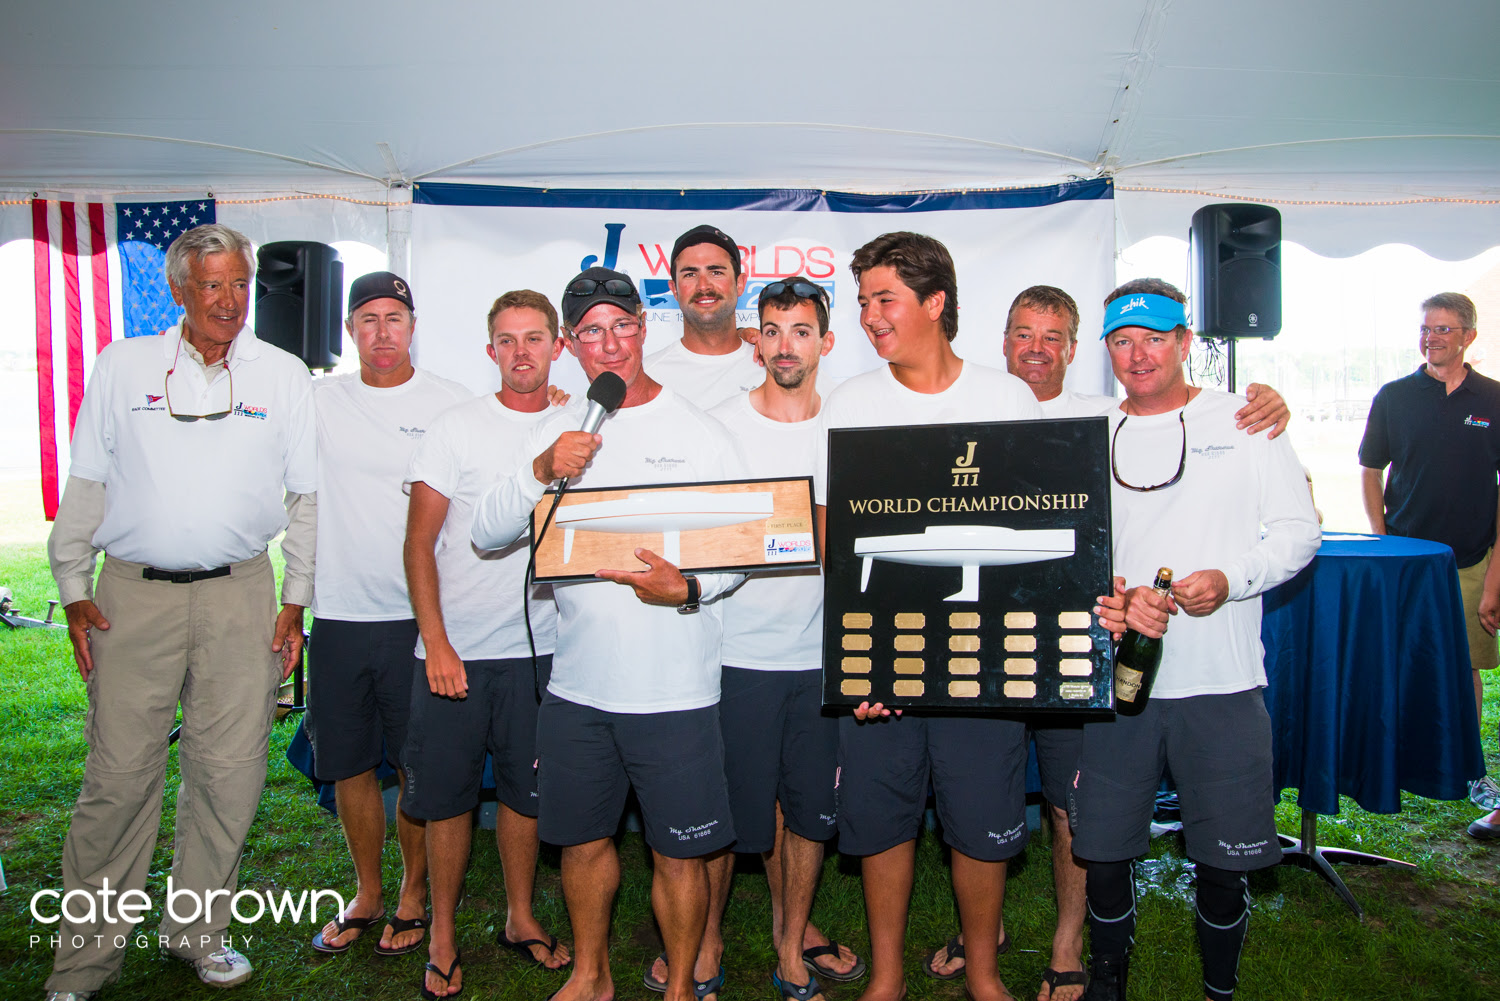 J/111 World Champions- George Gamble's MY SHARONA from Pensacola, FL